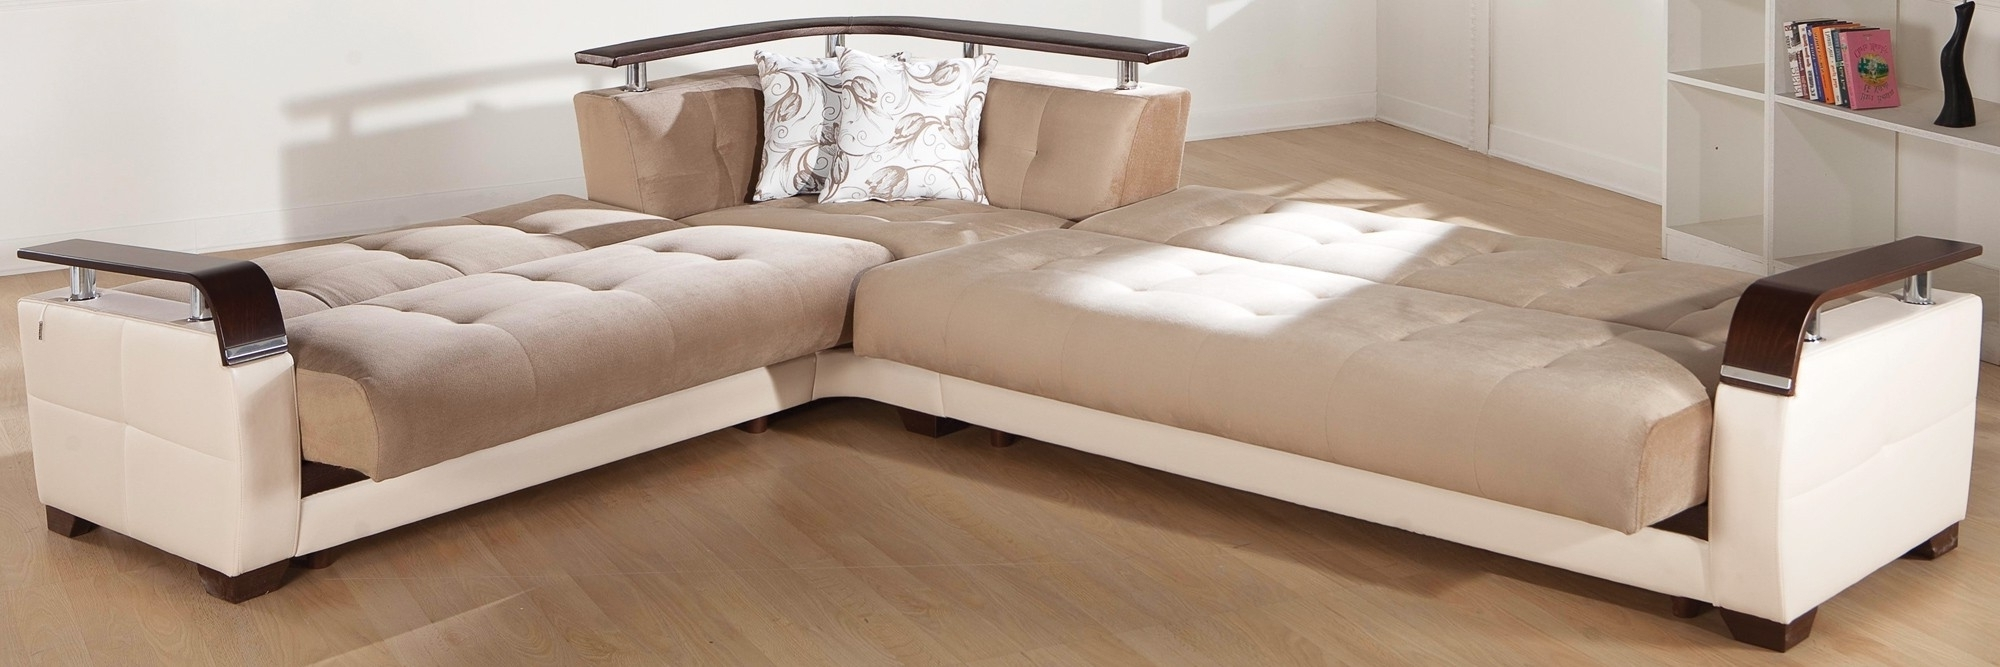 Natural Sectional Sofa Sleeper Contemporary Sectional Sleeper Sofa Inside Widely Used Sectional Sofas With Sleeper (View 4 of 20)